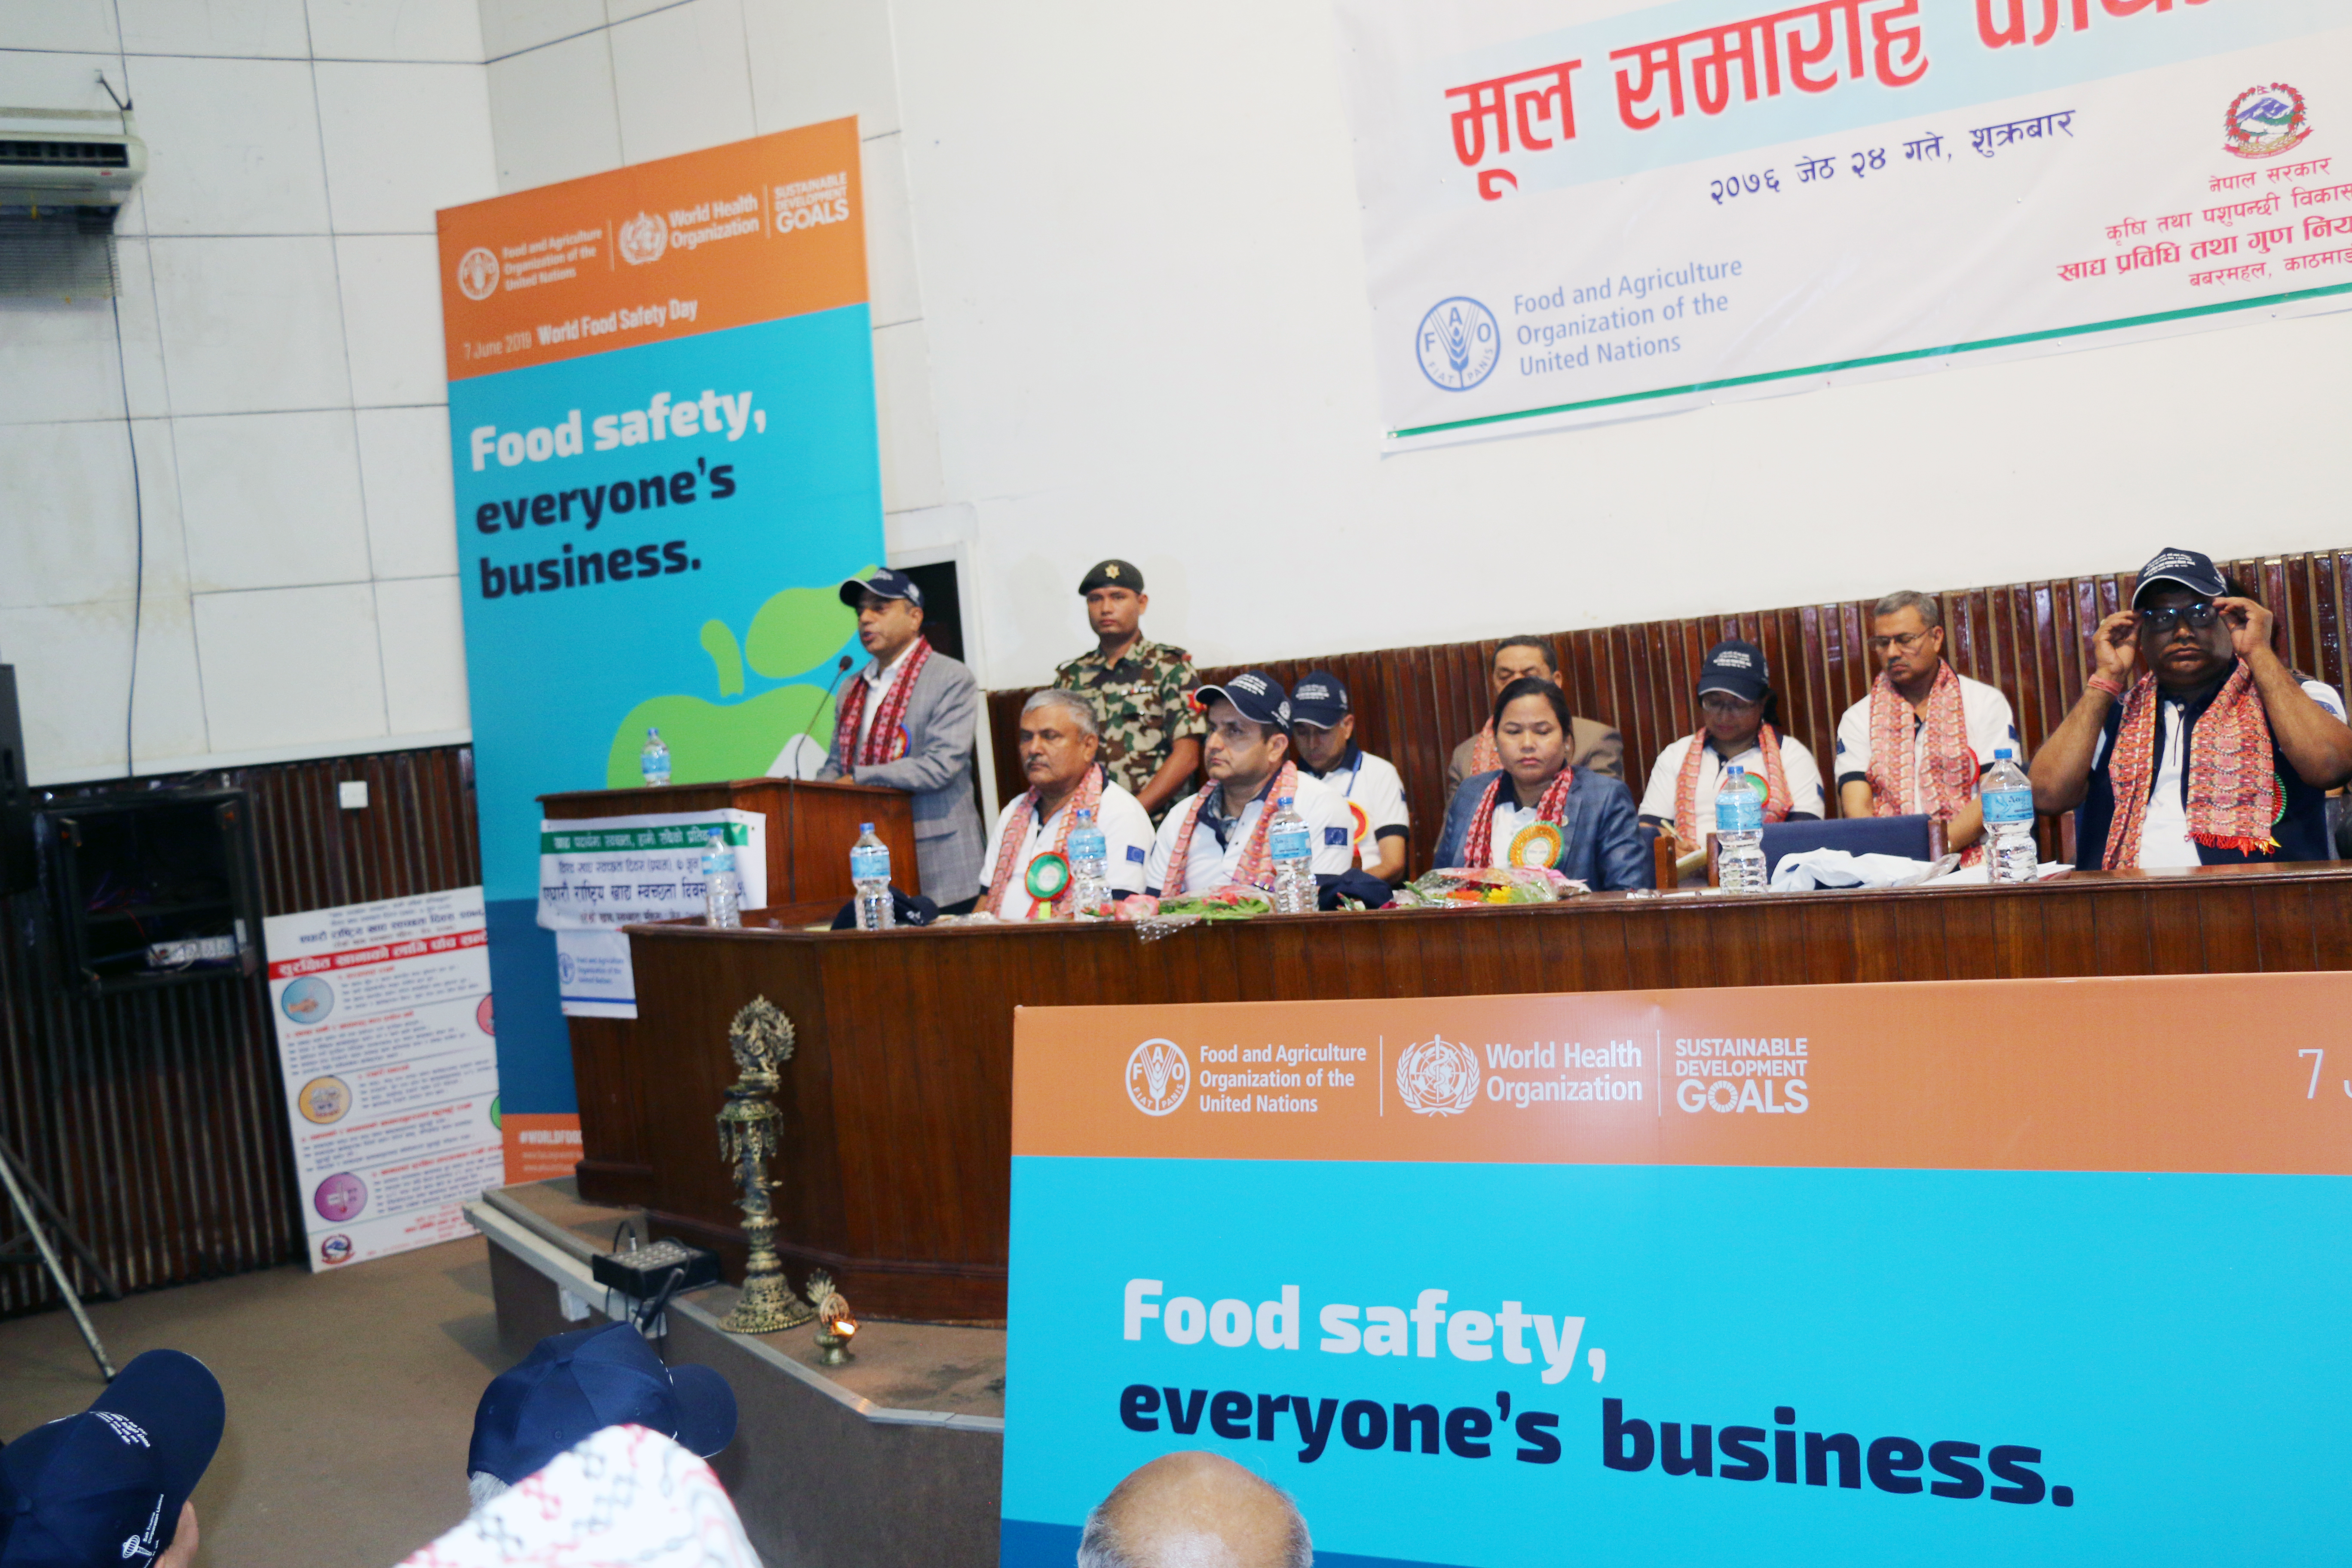 FAO in Nepal | Food and Agriculture Organization of the United Nations